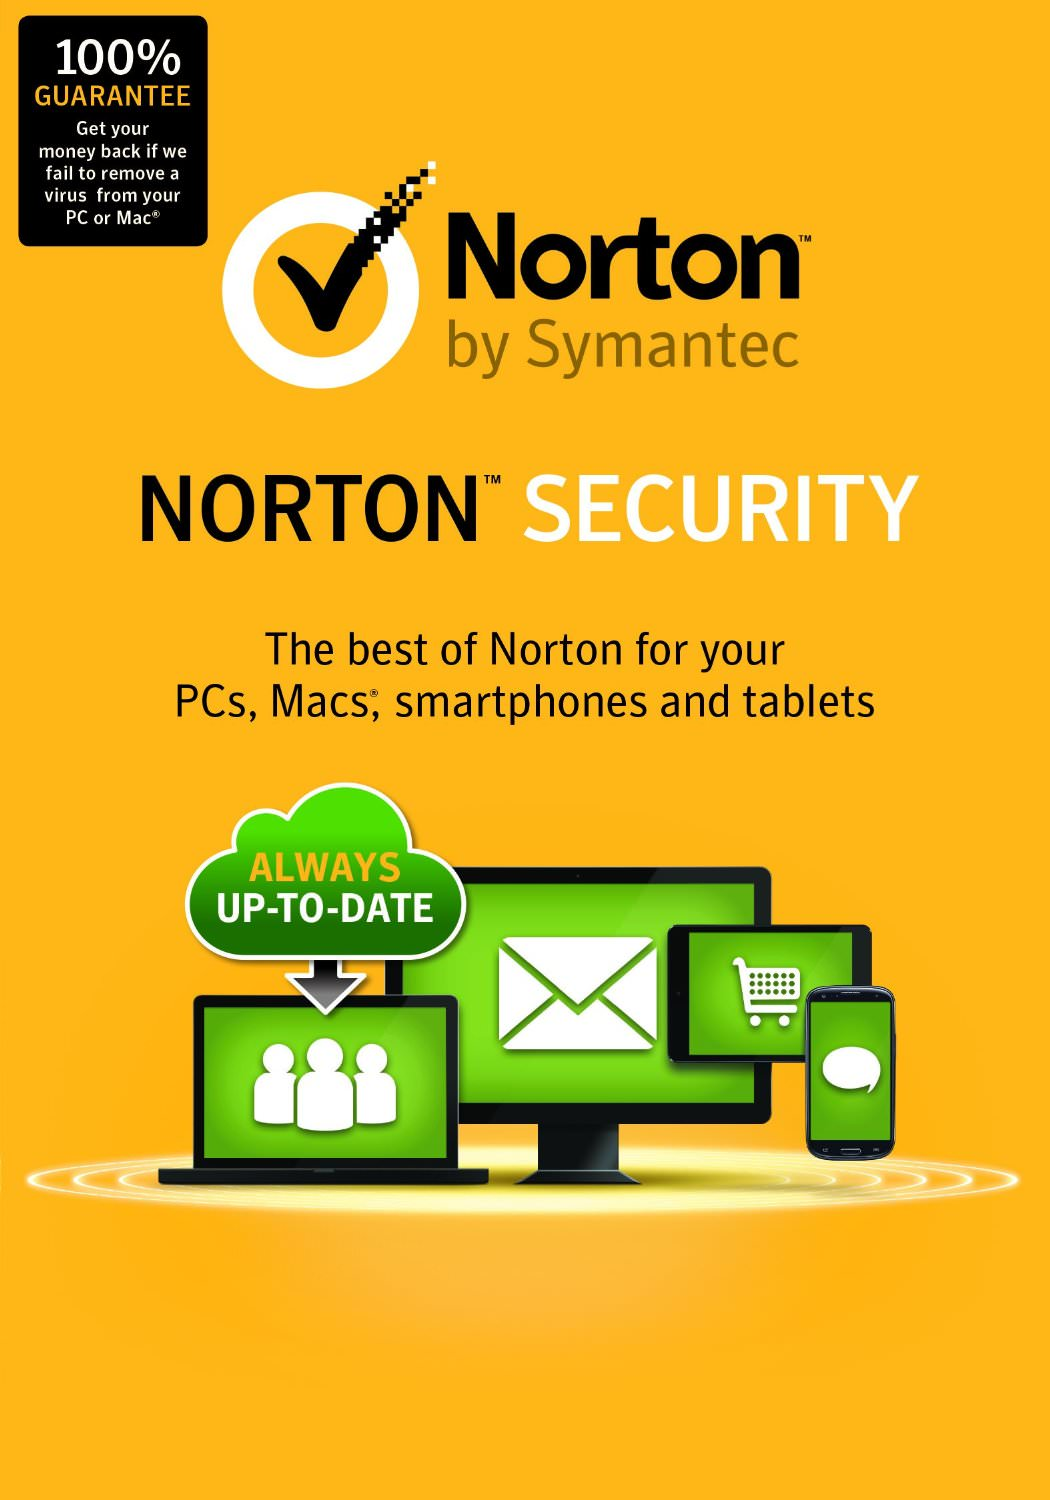 Norton security premium computer antivirus software Anti virus programs